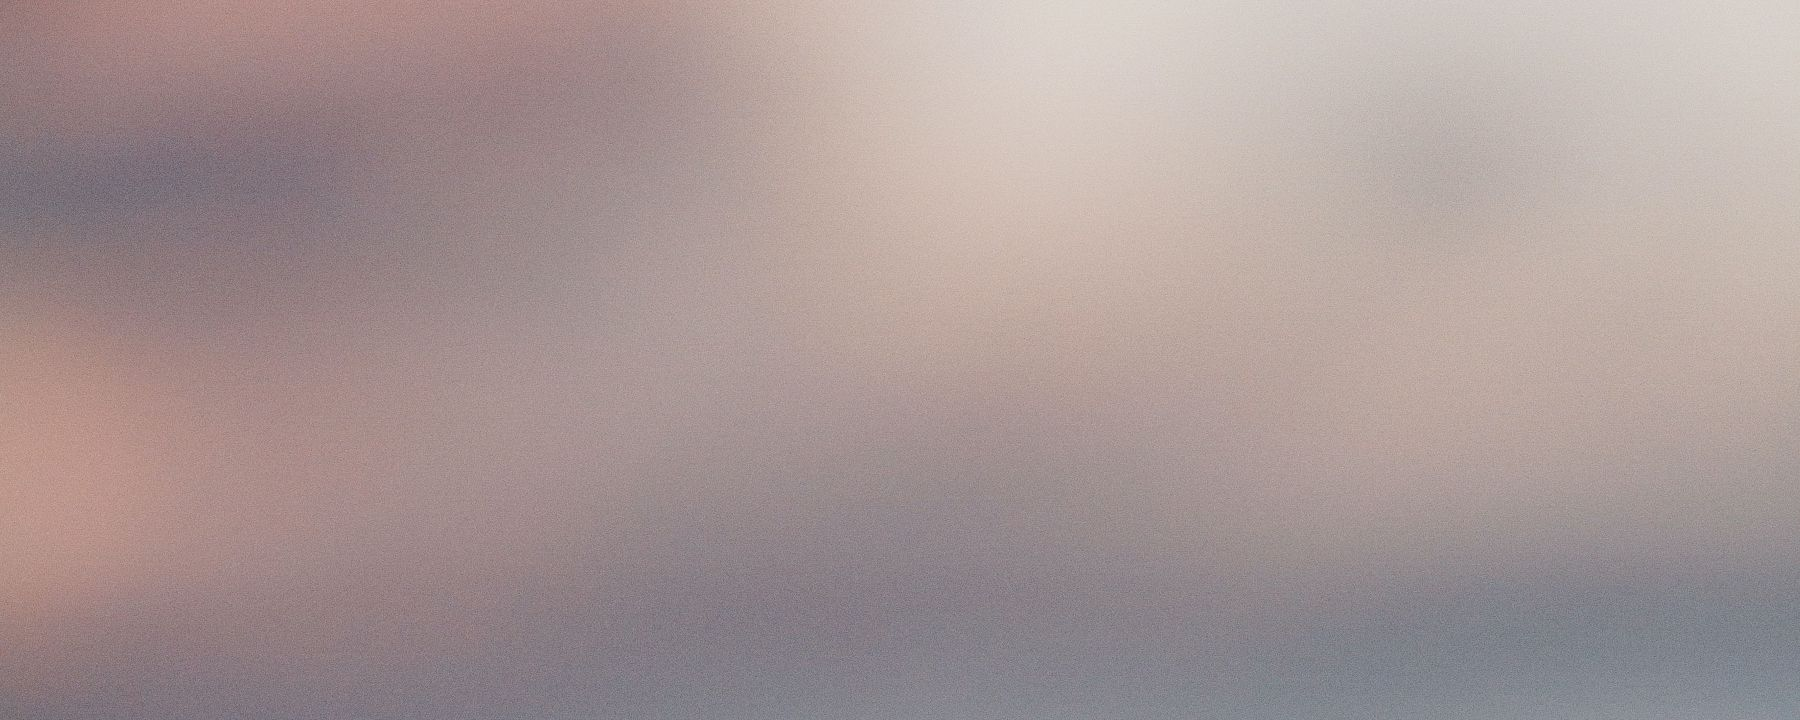 foggy image, blurred, obfuscated